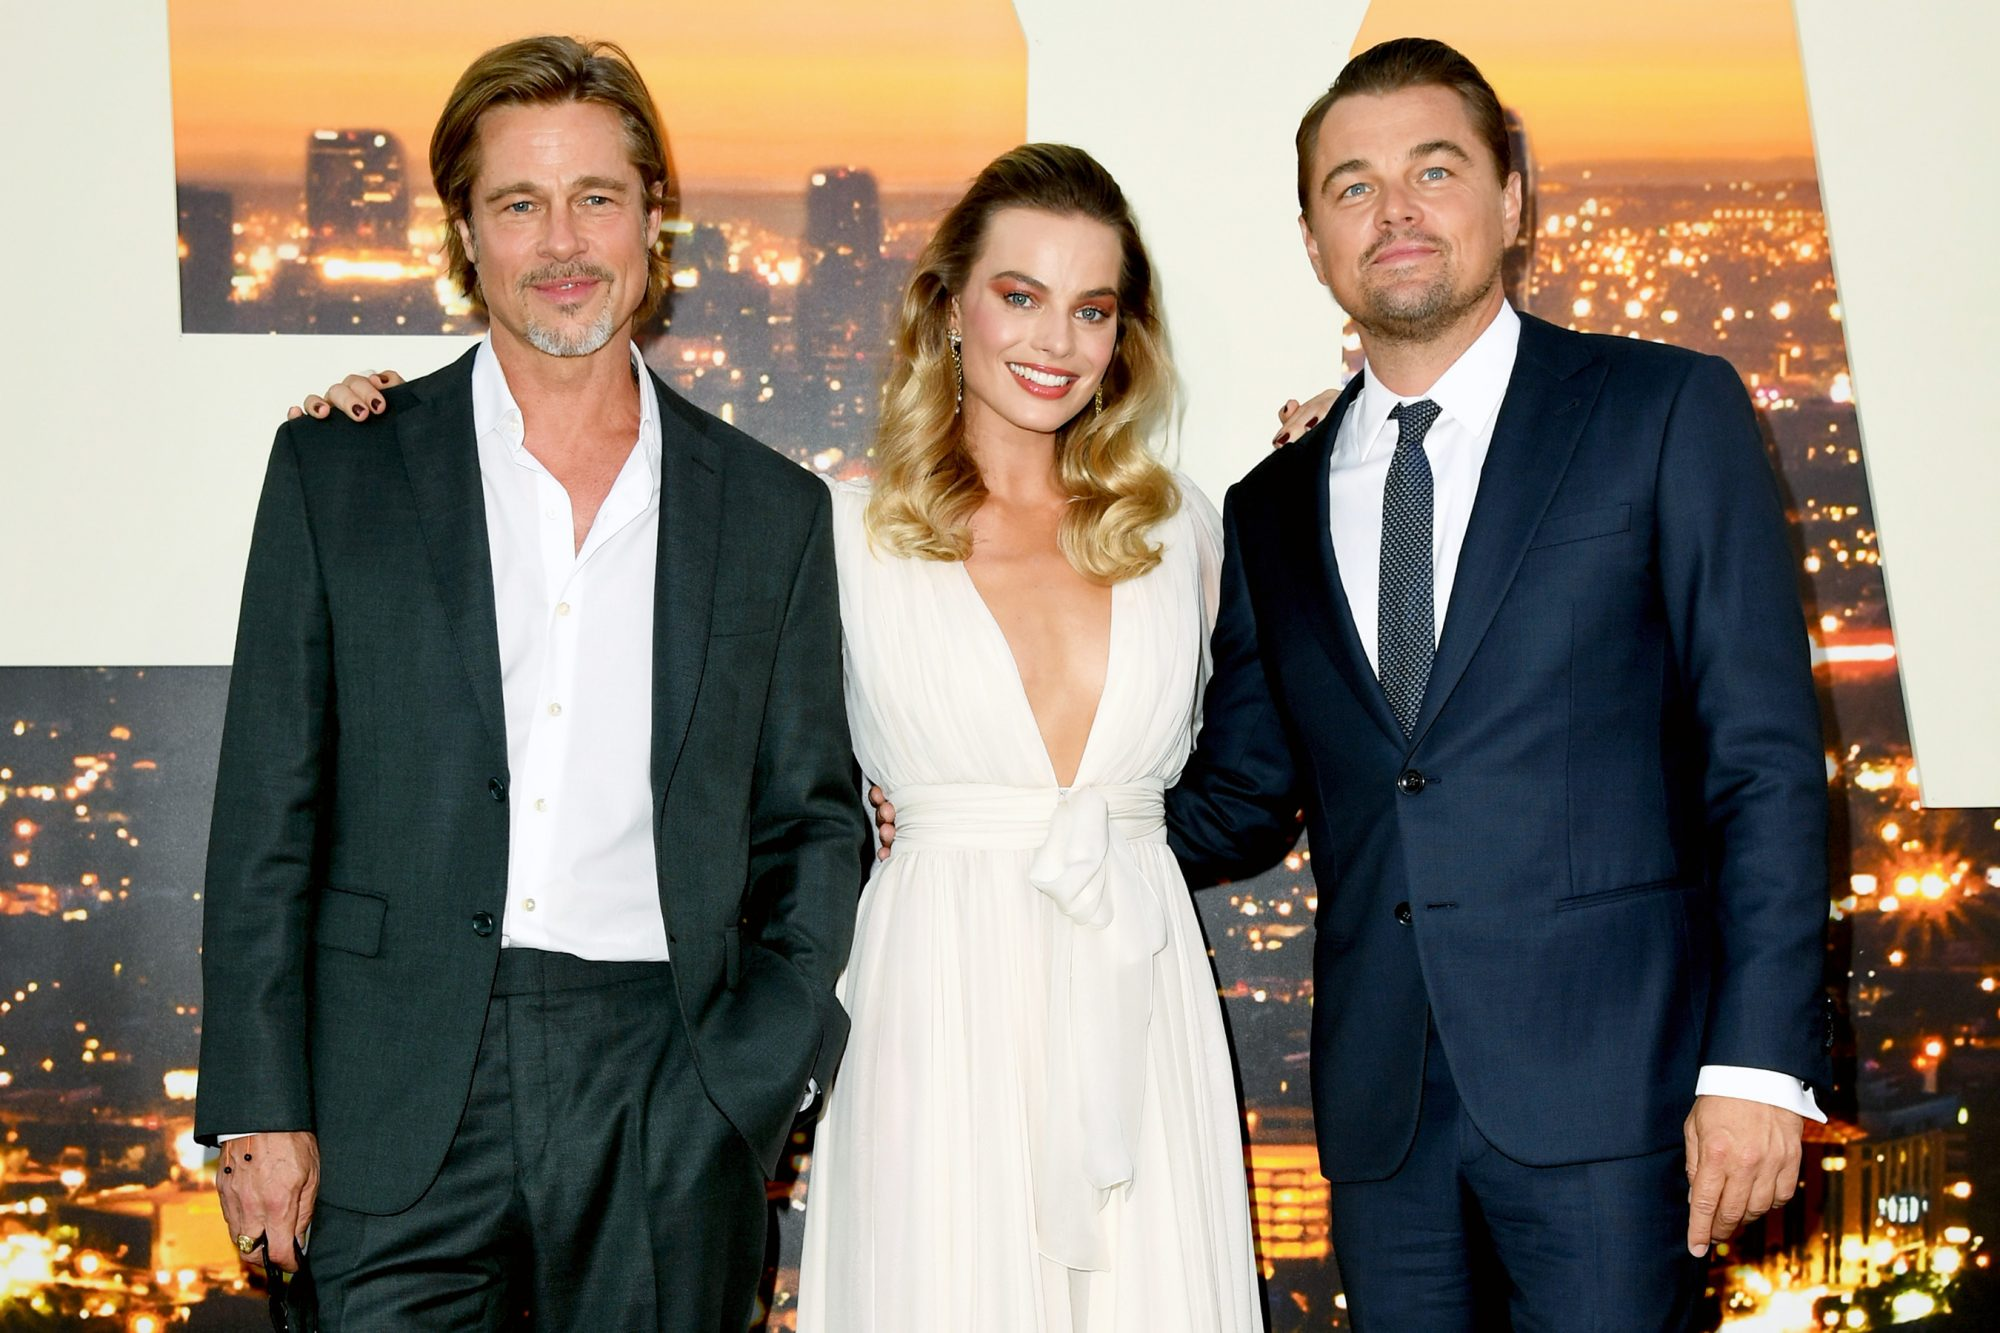 Brad Pitt, Margot Robbie and Leonardo DiCaprio